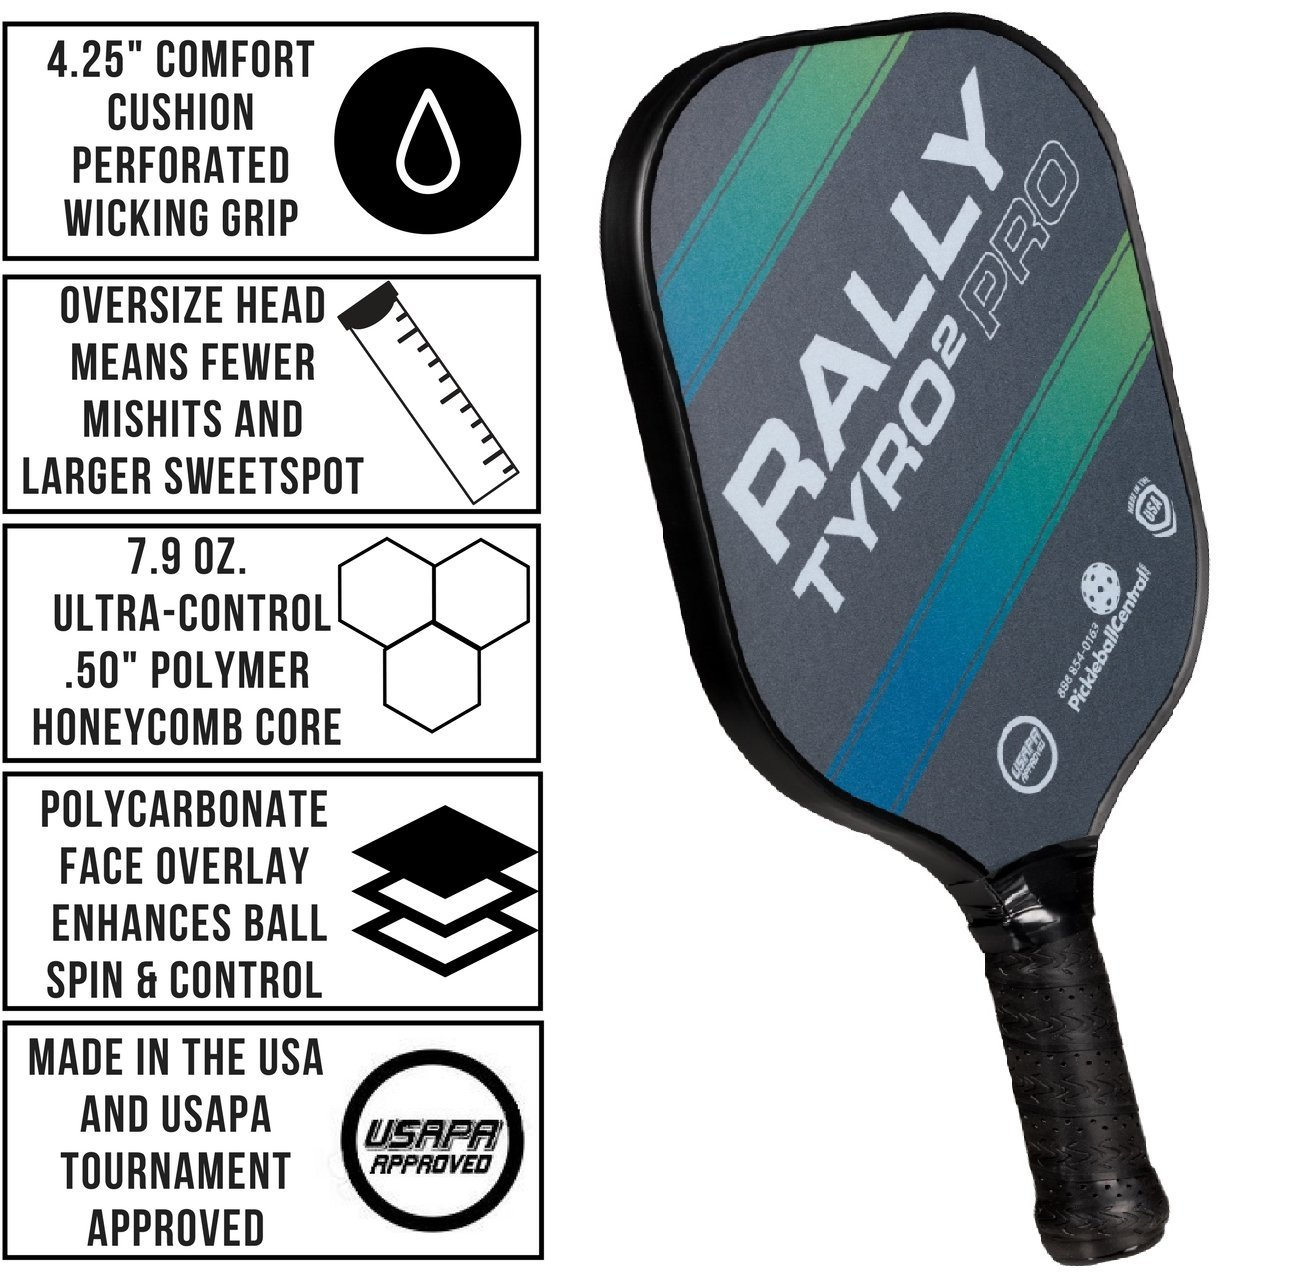 Rally Tyro 2 Pro Pickleball Paddle (2 Paddles / 4 Ball Bundle - Ocean Blue) by PickleballCentral (Image #2)